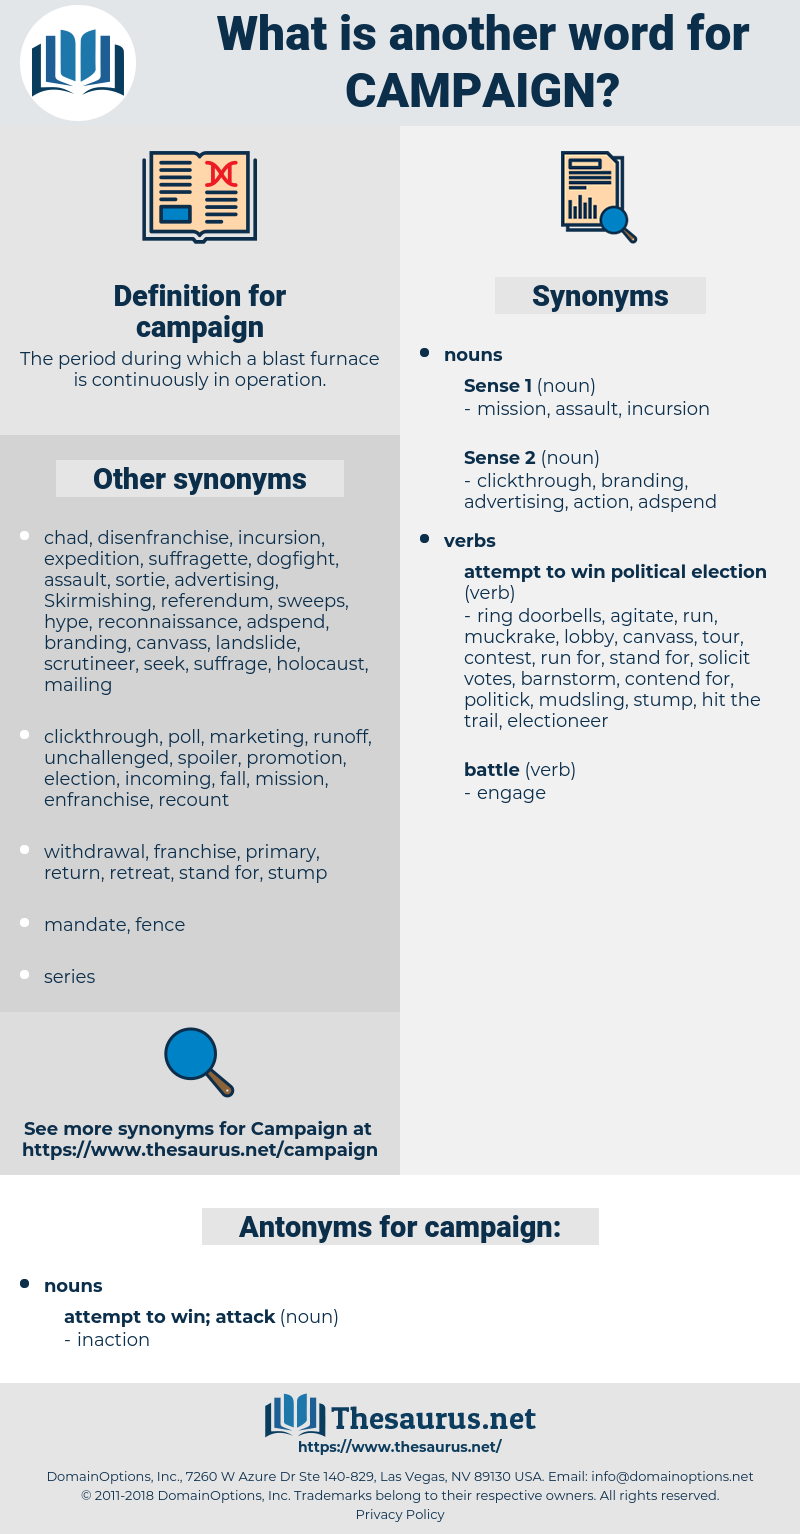 campaign, synonym campaign, another word for campaign, words like campaign, thesaurus campaign